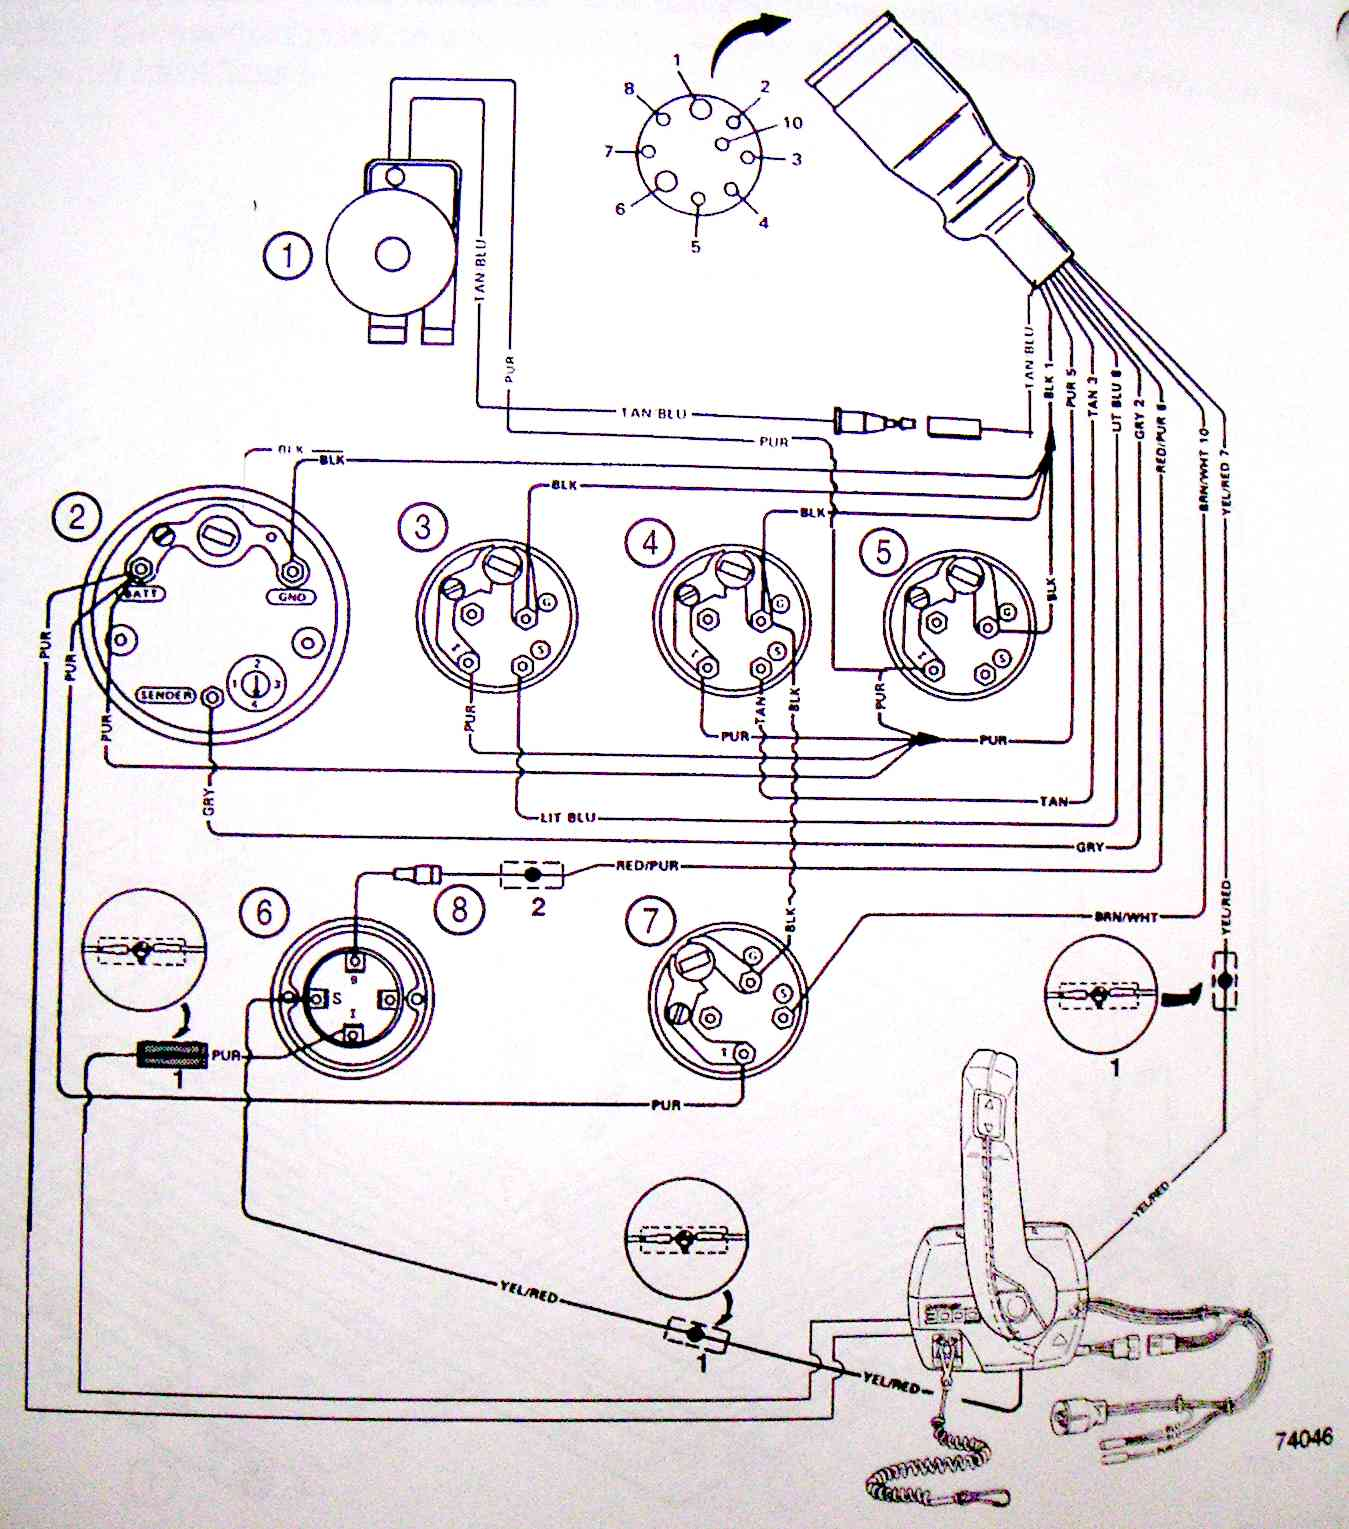 BoatHarness74046 mercruiser 4 3 wiring diagram mercruiser wiring harness color code mercruiser wiring harness at gsmportal.co